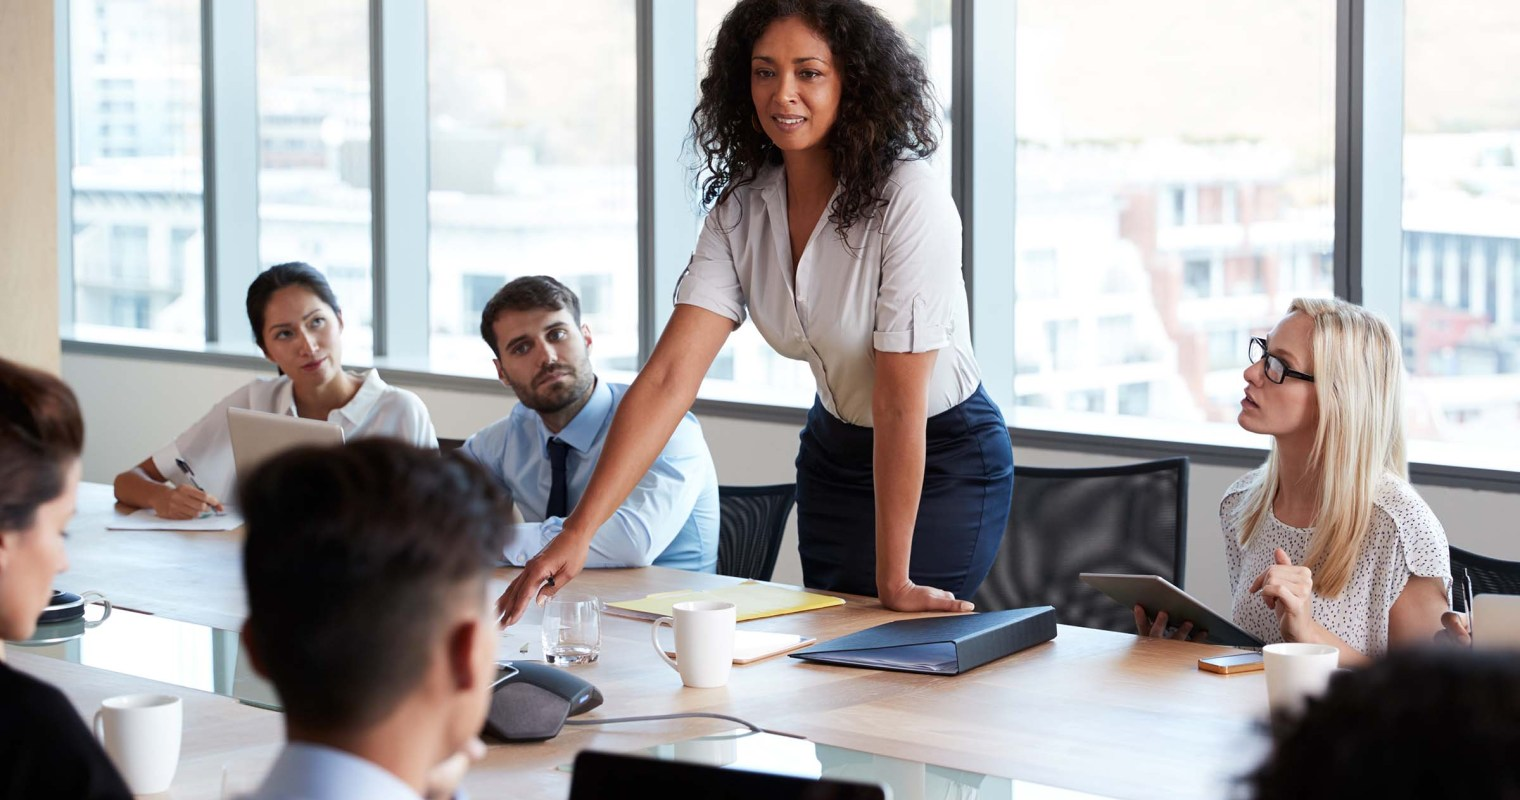 Become a Better Leader: 6 Qualities That Define Good Leadership